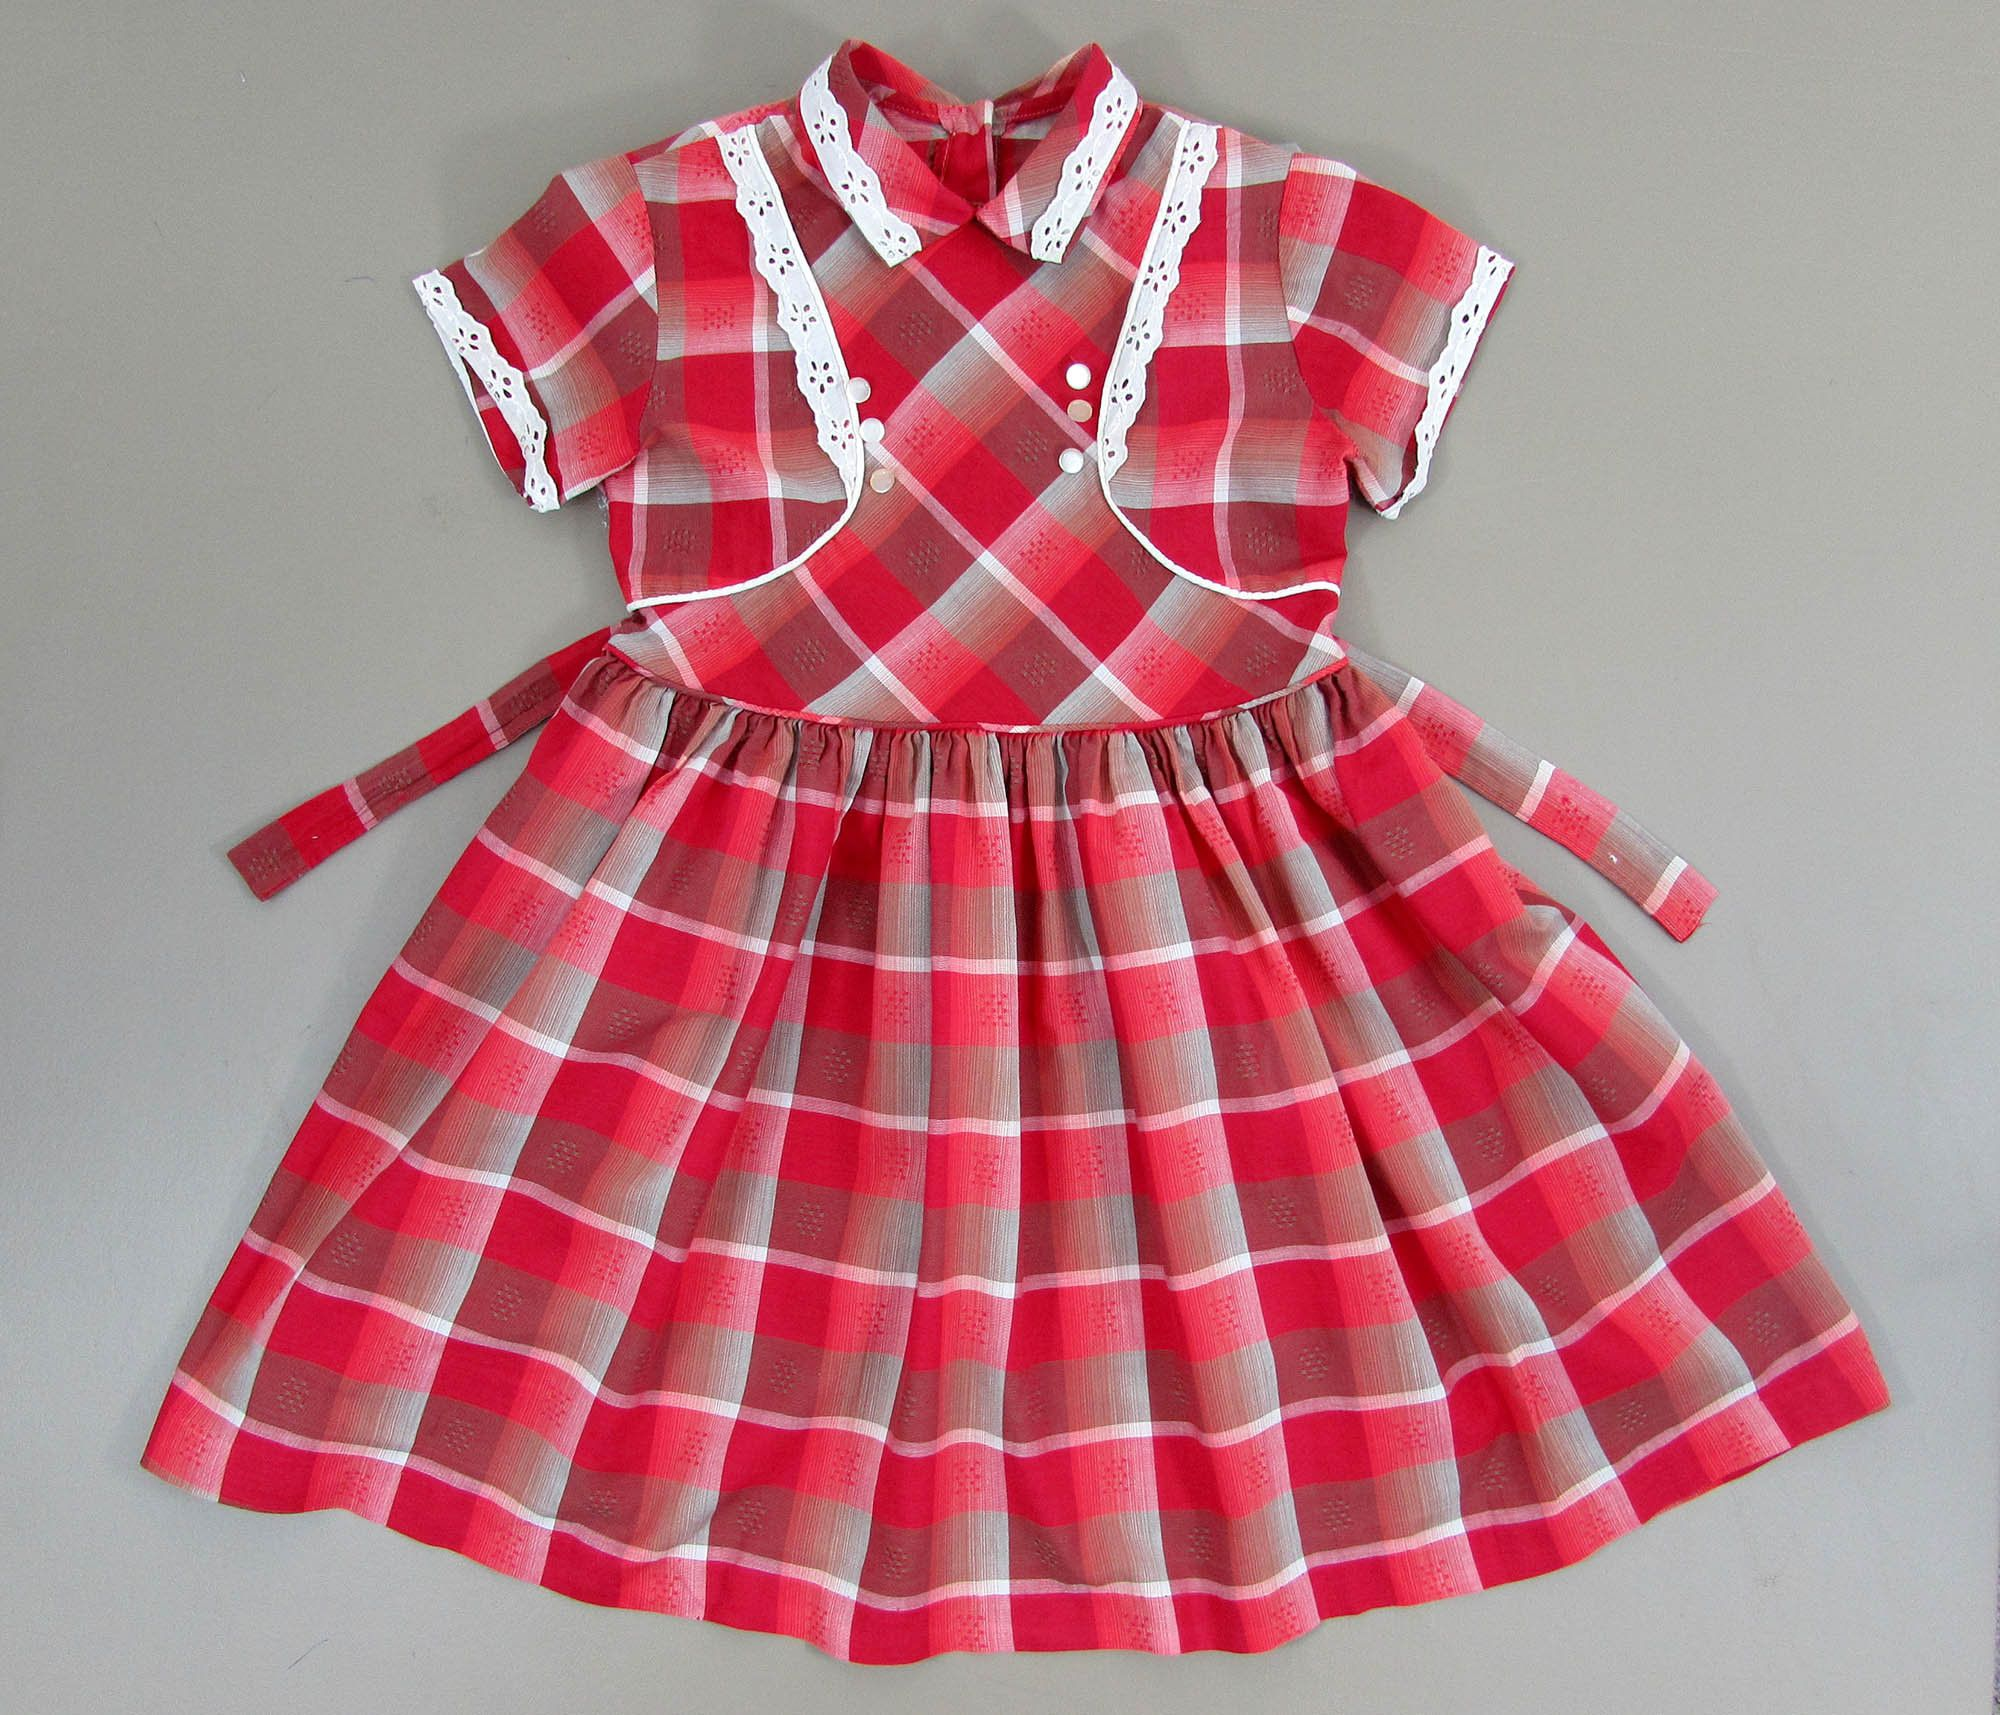 1950s60s little girls red plaid dress with eyelet lace